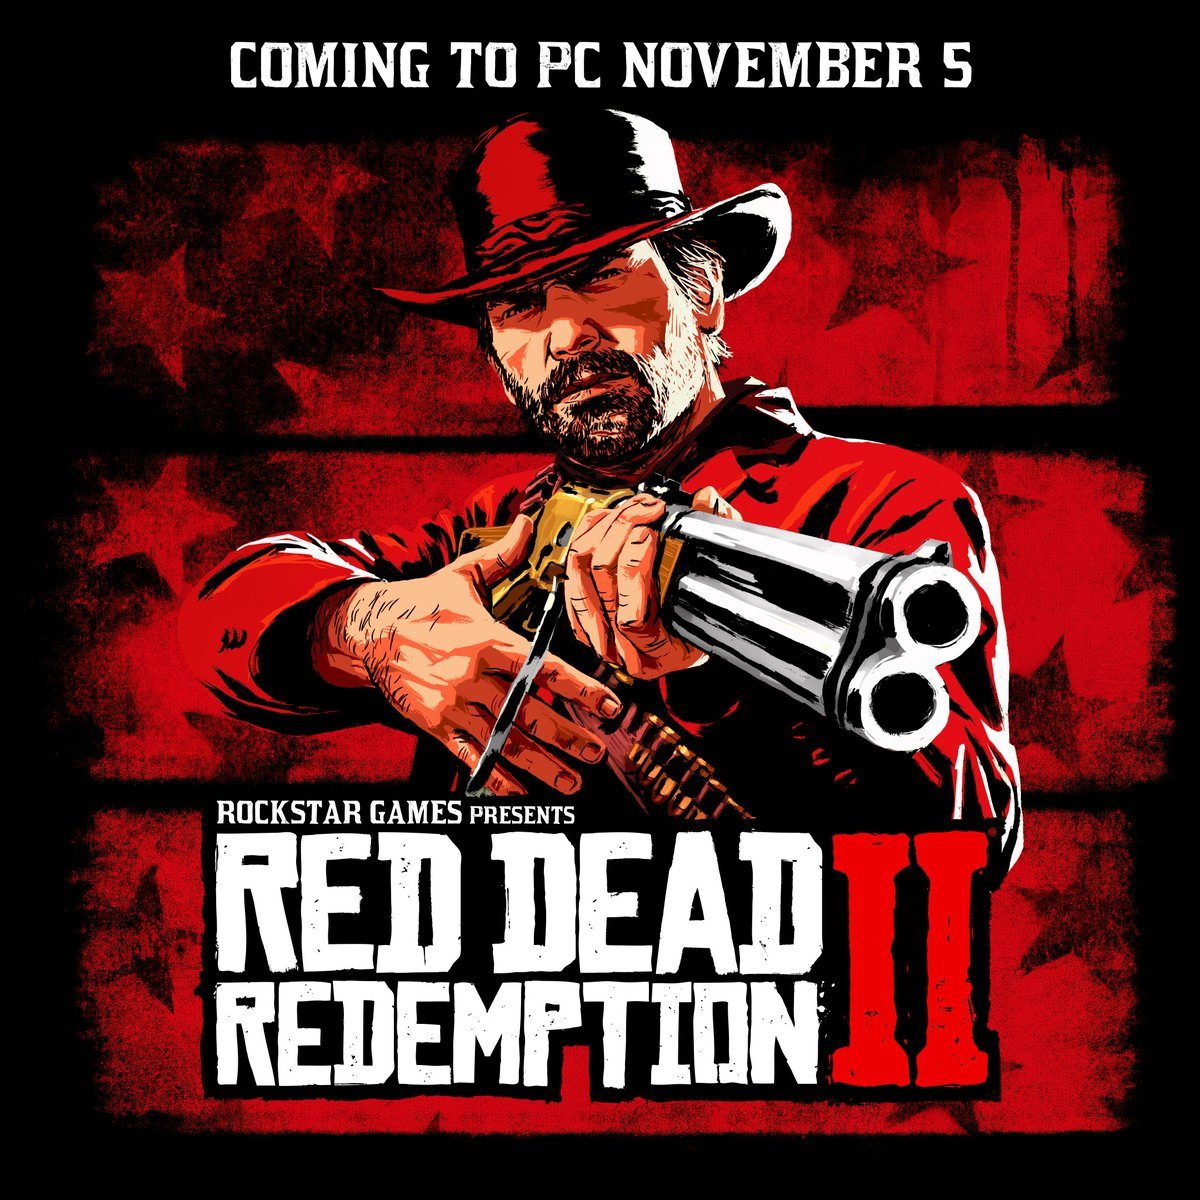 Red Dead Redemption II Officially Announced For PC